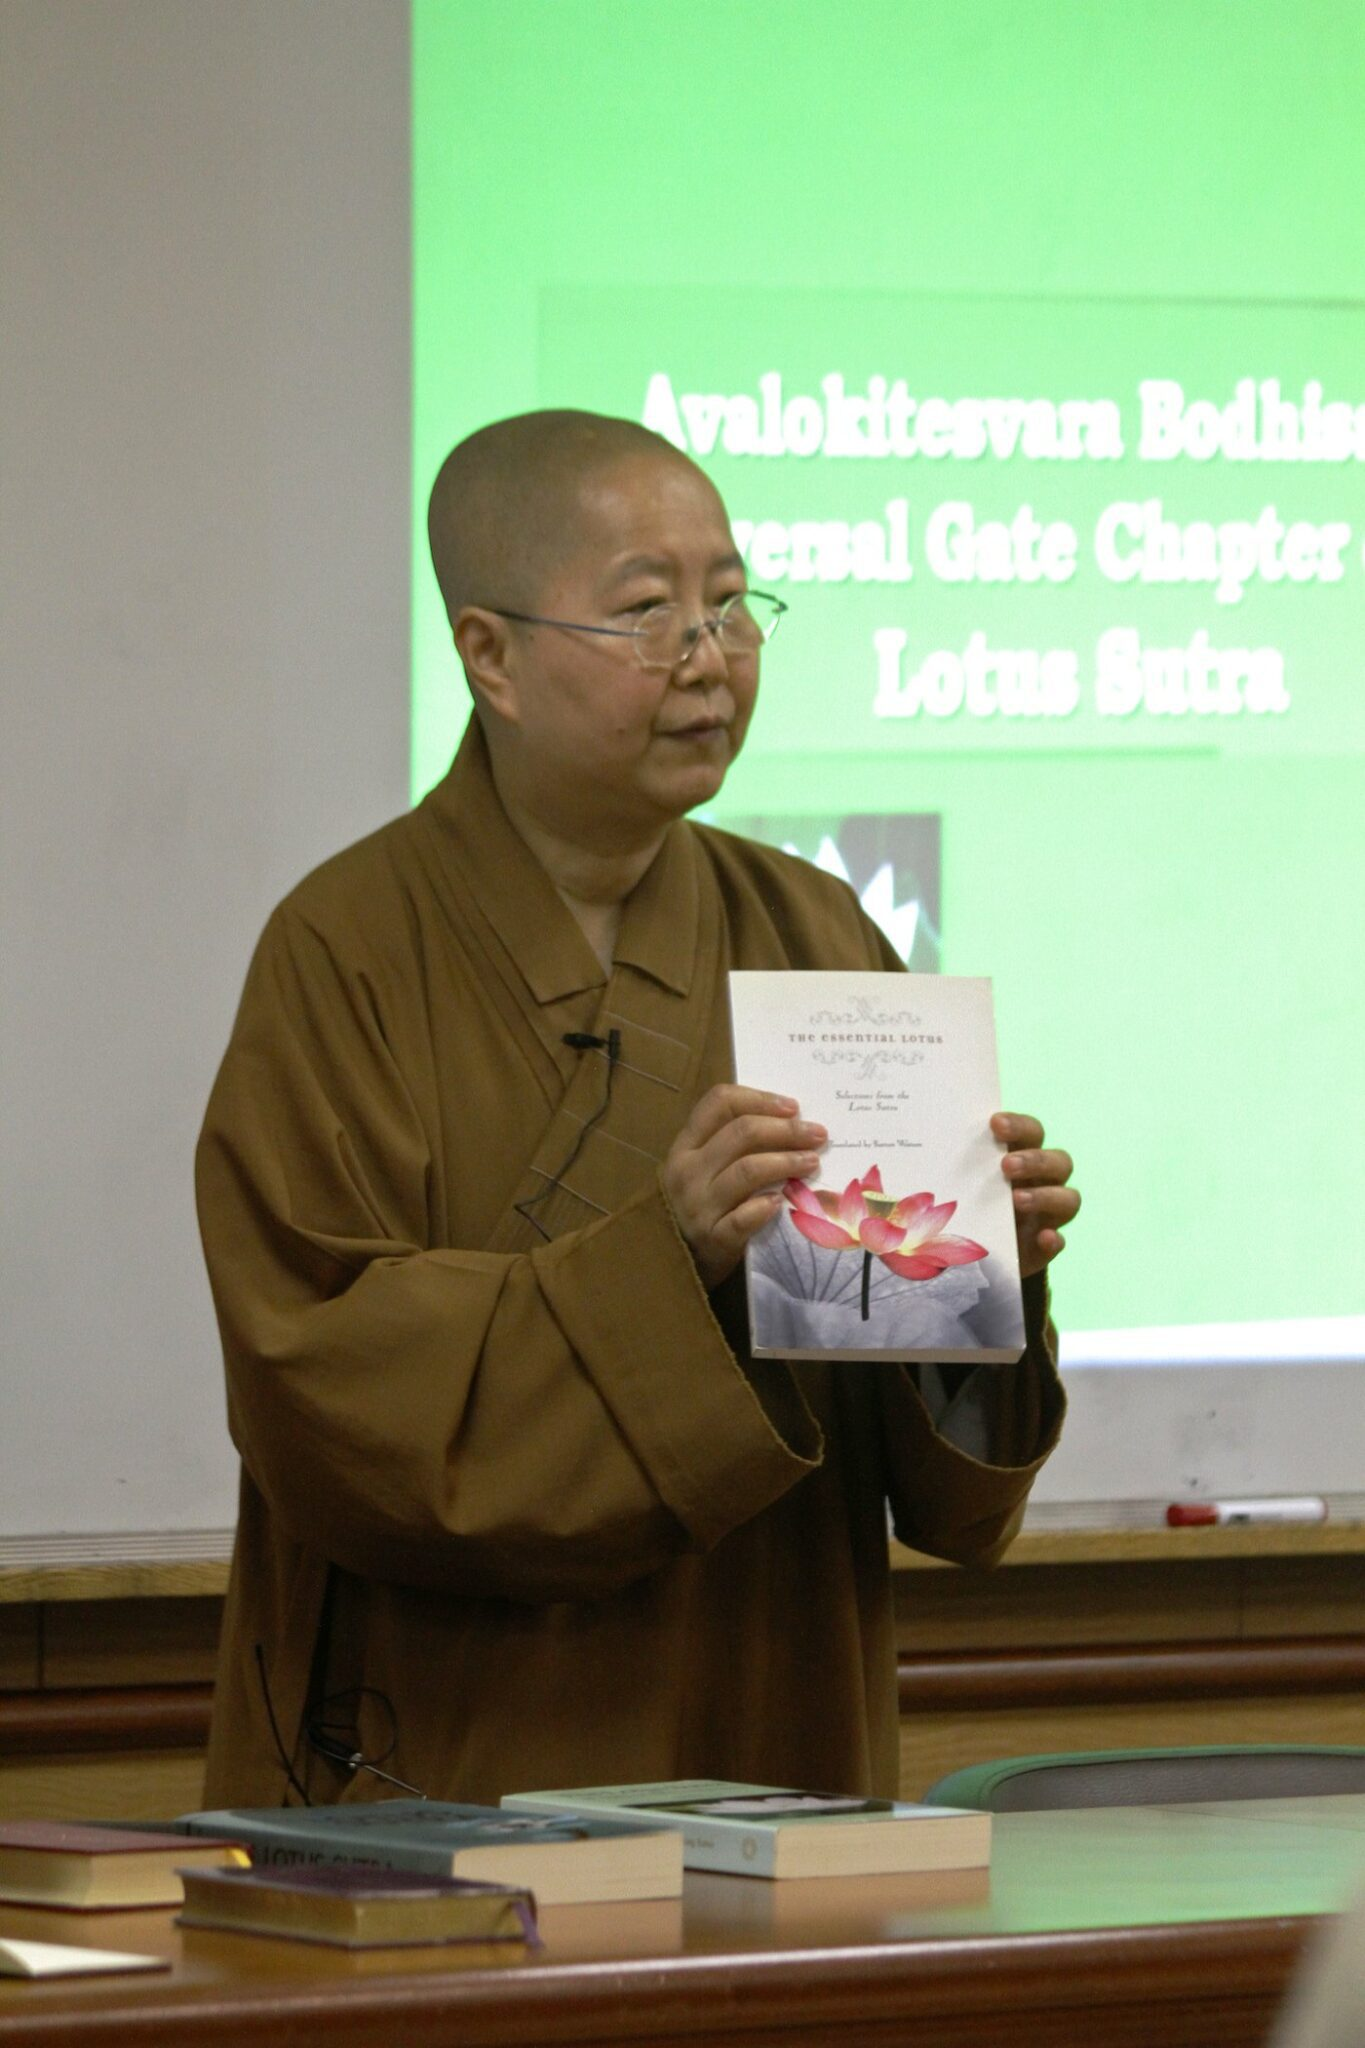 Venerable Miaoshi displays a Lotus Sutra Translation